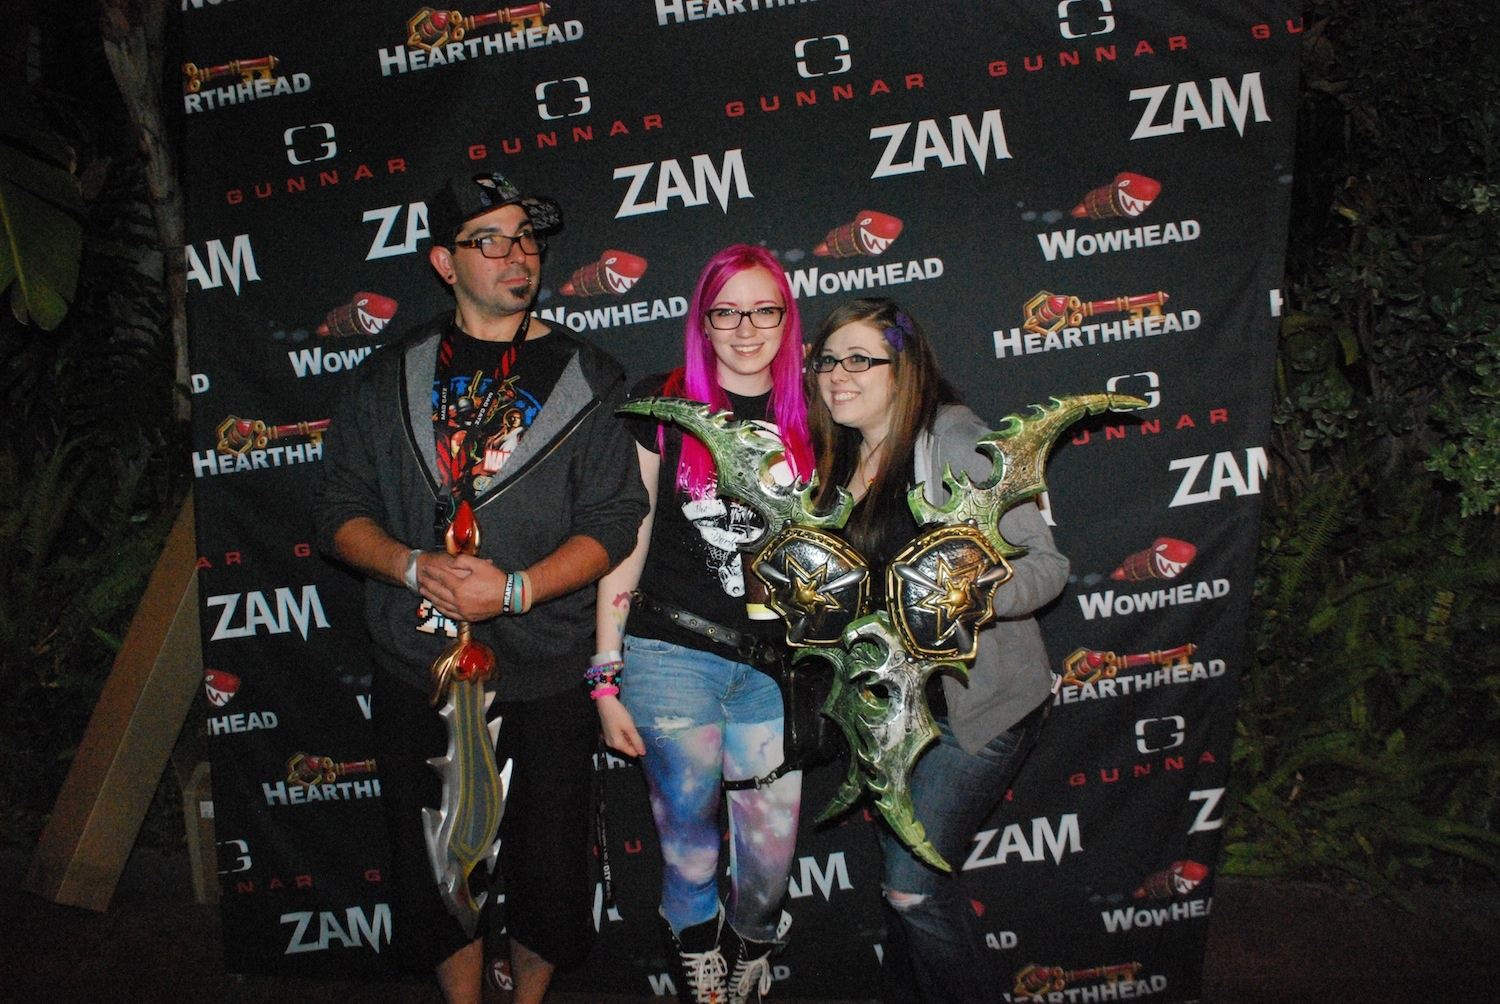 warlords of draenor complete guide gunnar party pictures and